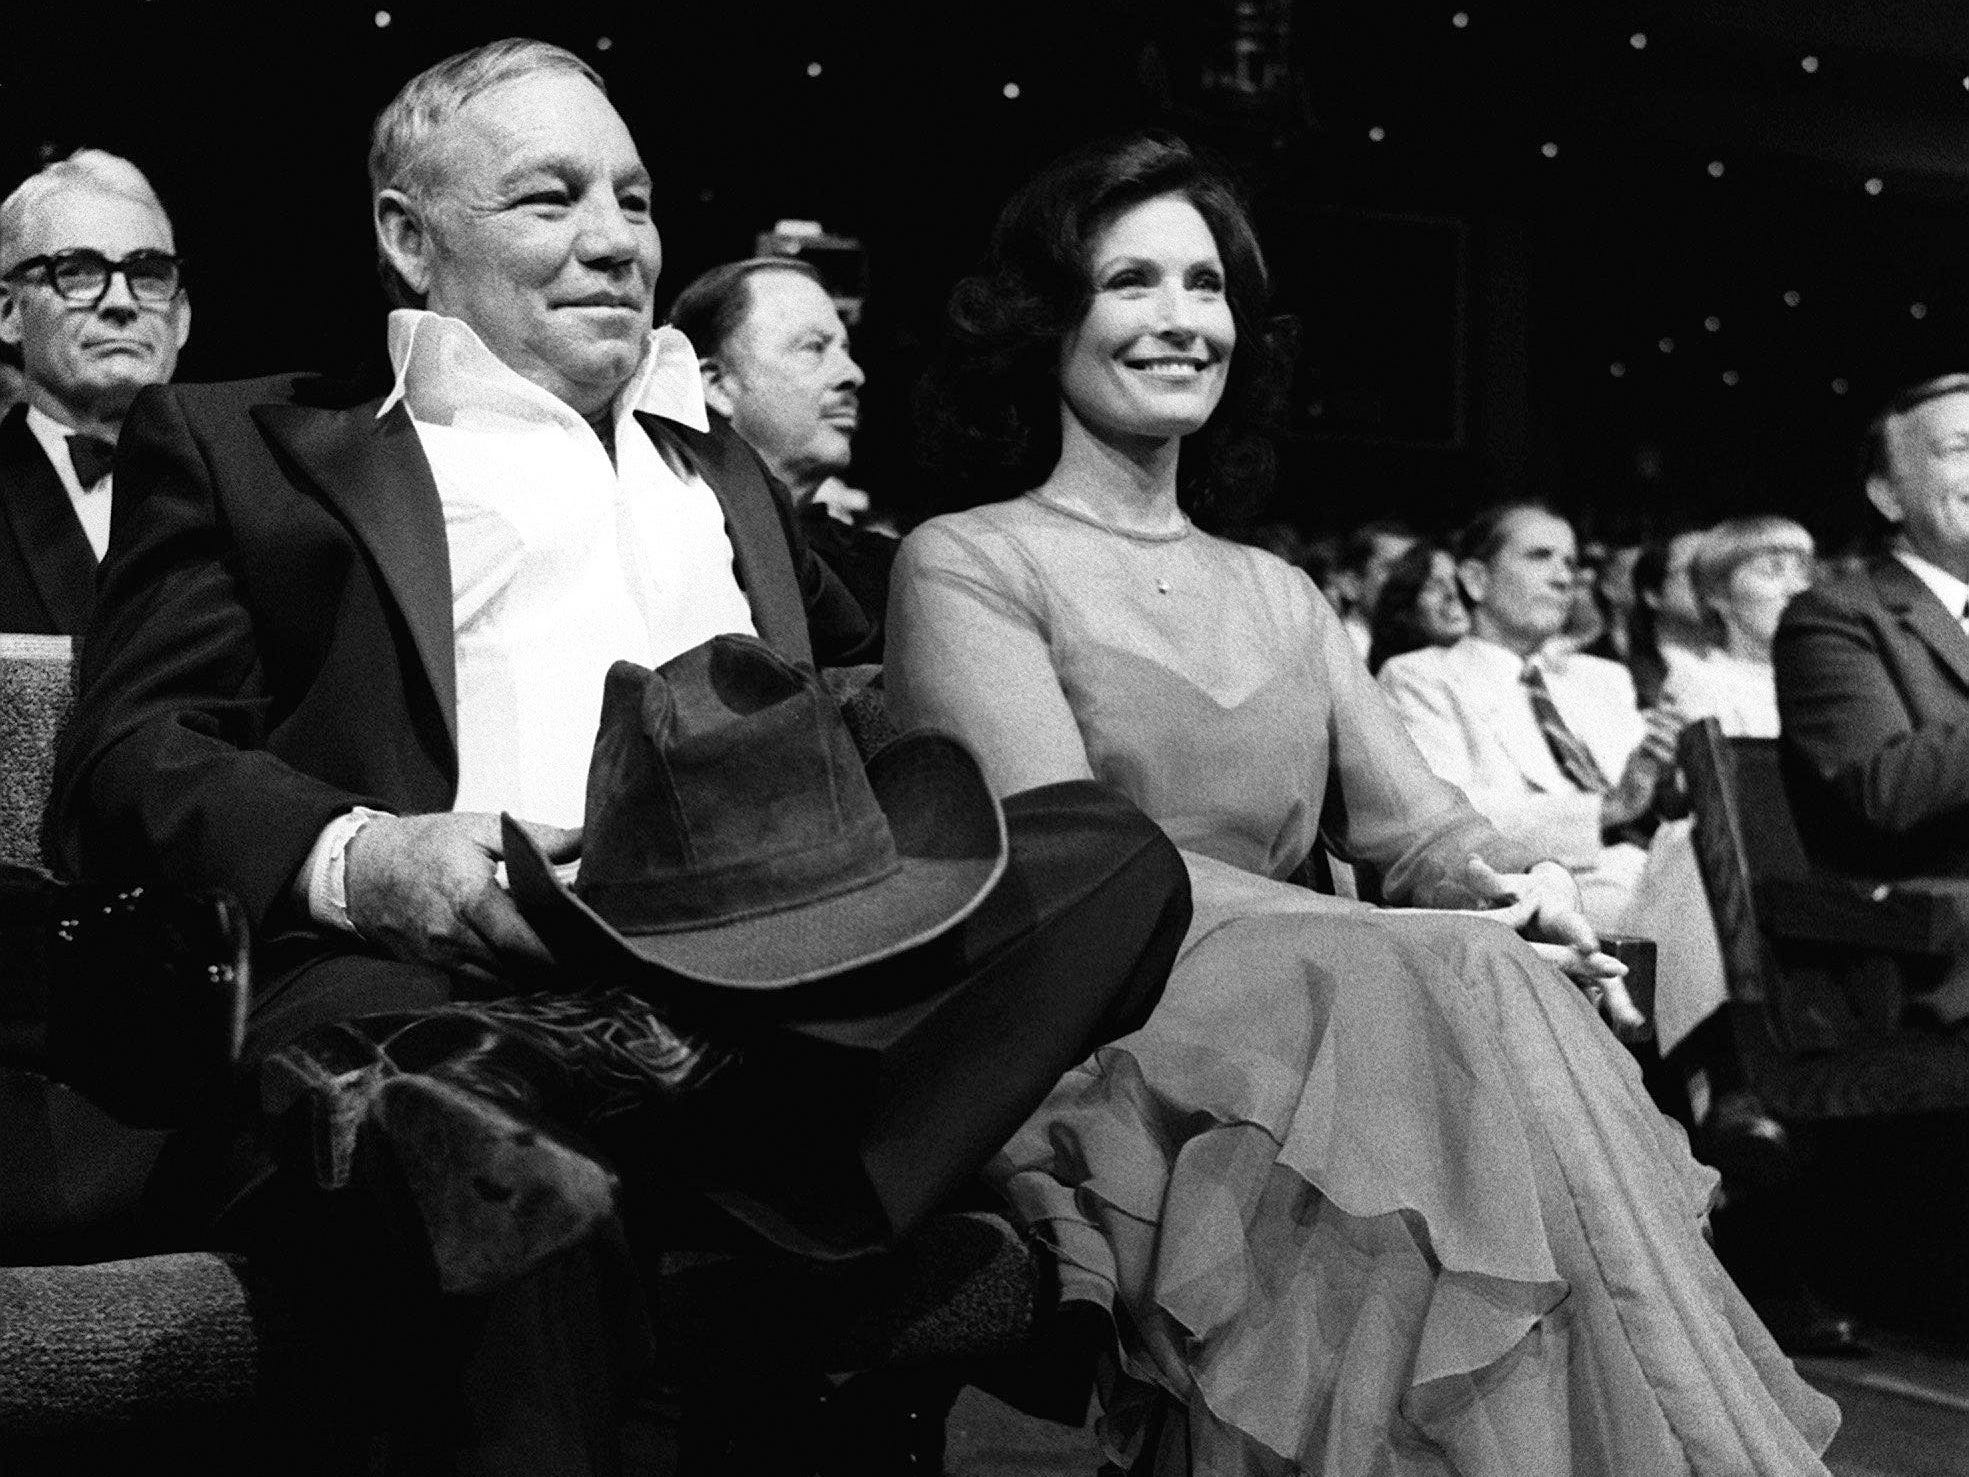 """Loretta Lynn, right, and her husband, Mooney Lynn are in the audience at the 14th annual CMA Awards show at the Grand Ole Opry House Oct. 13, 1980. Lynn accepts the award for the Album of the Year by the original movie sound track from """"Coal Miner's Daughter."""""""